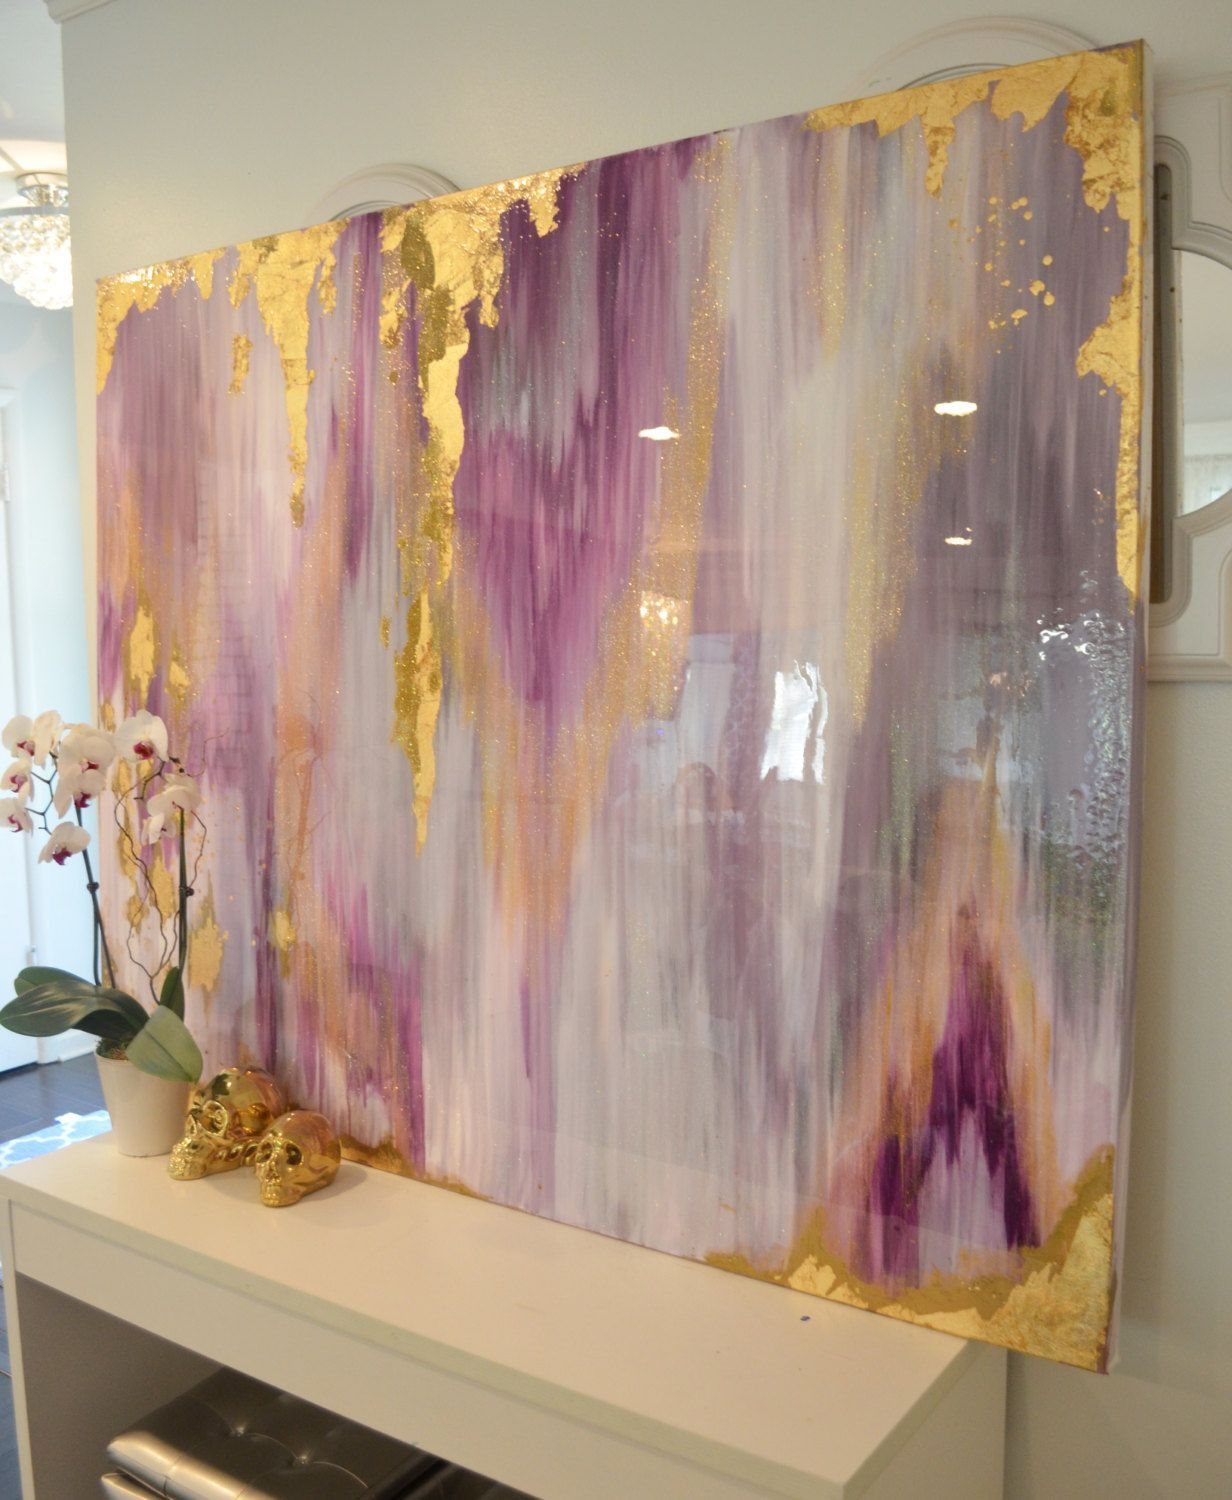 sold acrylic abstract art large canvas painting gray silver gold ikat ombre glitter with glass and resin coat 48 x 60 real gold leaf is part of Large canvas painting - Sold!! Acrylic Abstract Art Large Canvas Painting Gray, Silver, Gold Ikat Ombre Glitter with Glass and Resin Coat 48  x 60  real gold leaf Abstractart Acrylic